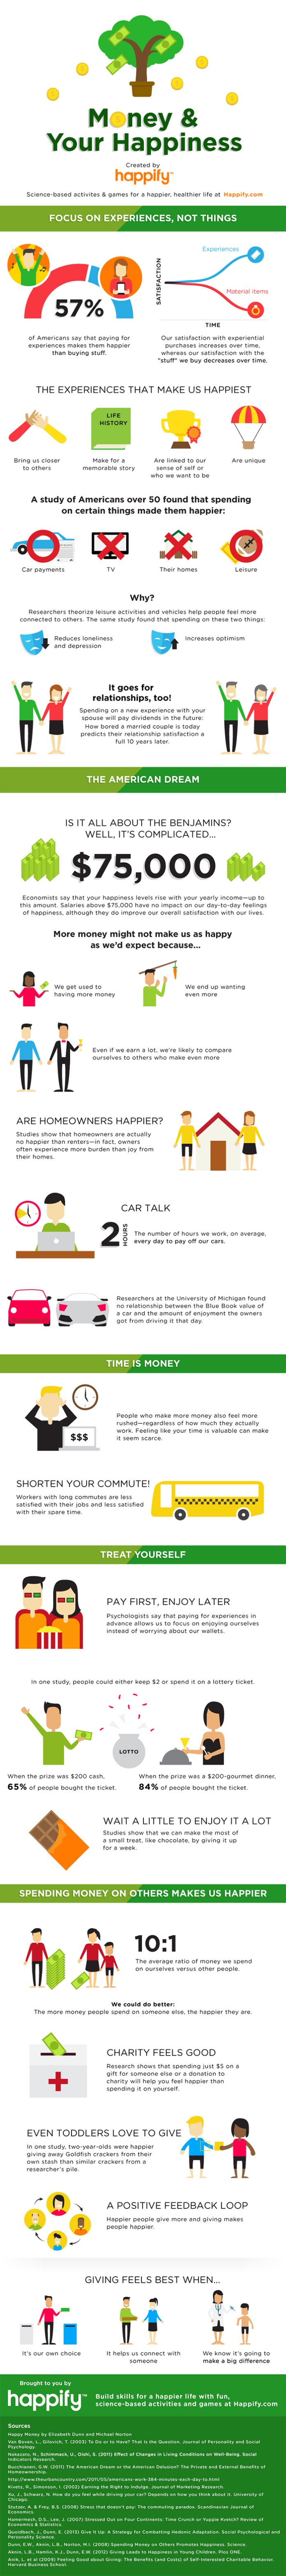 money-and-happiness-infographic